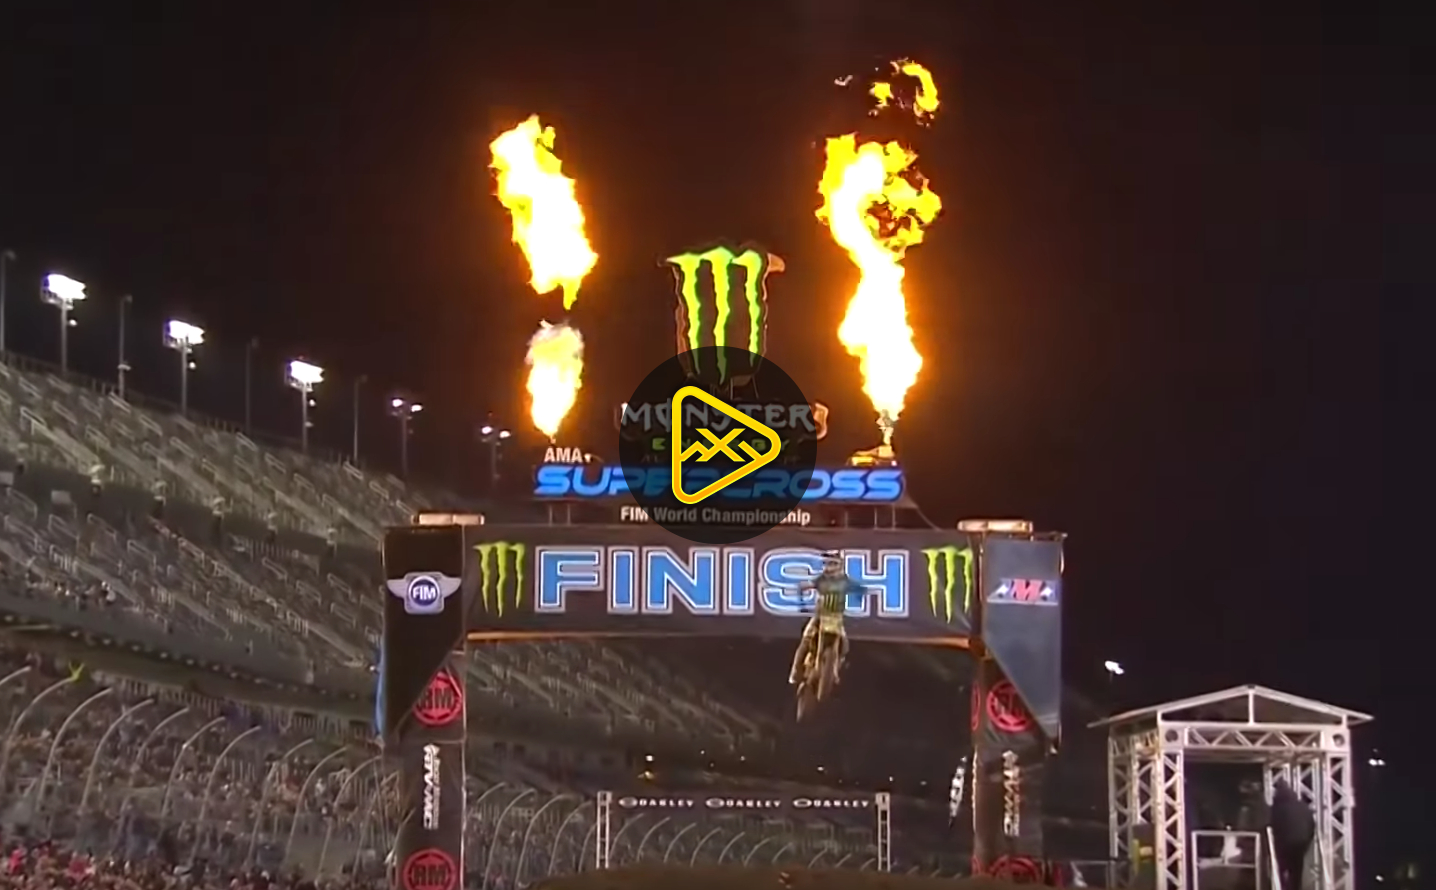 Eli Tomac's best SX moments from 2019-2020